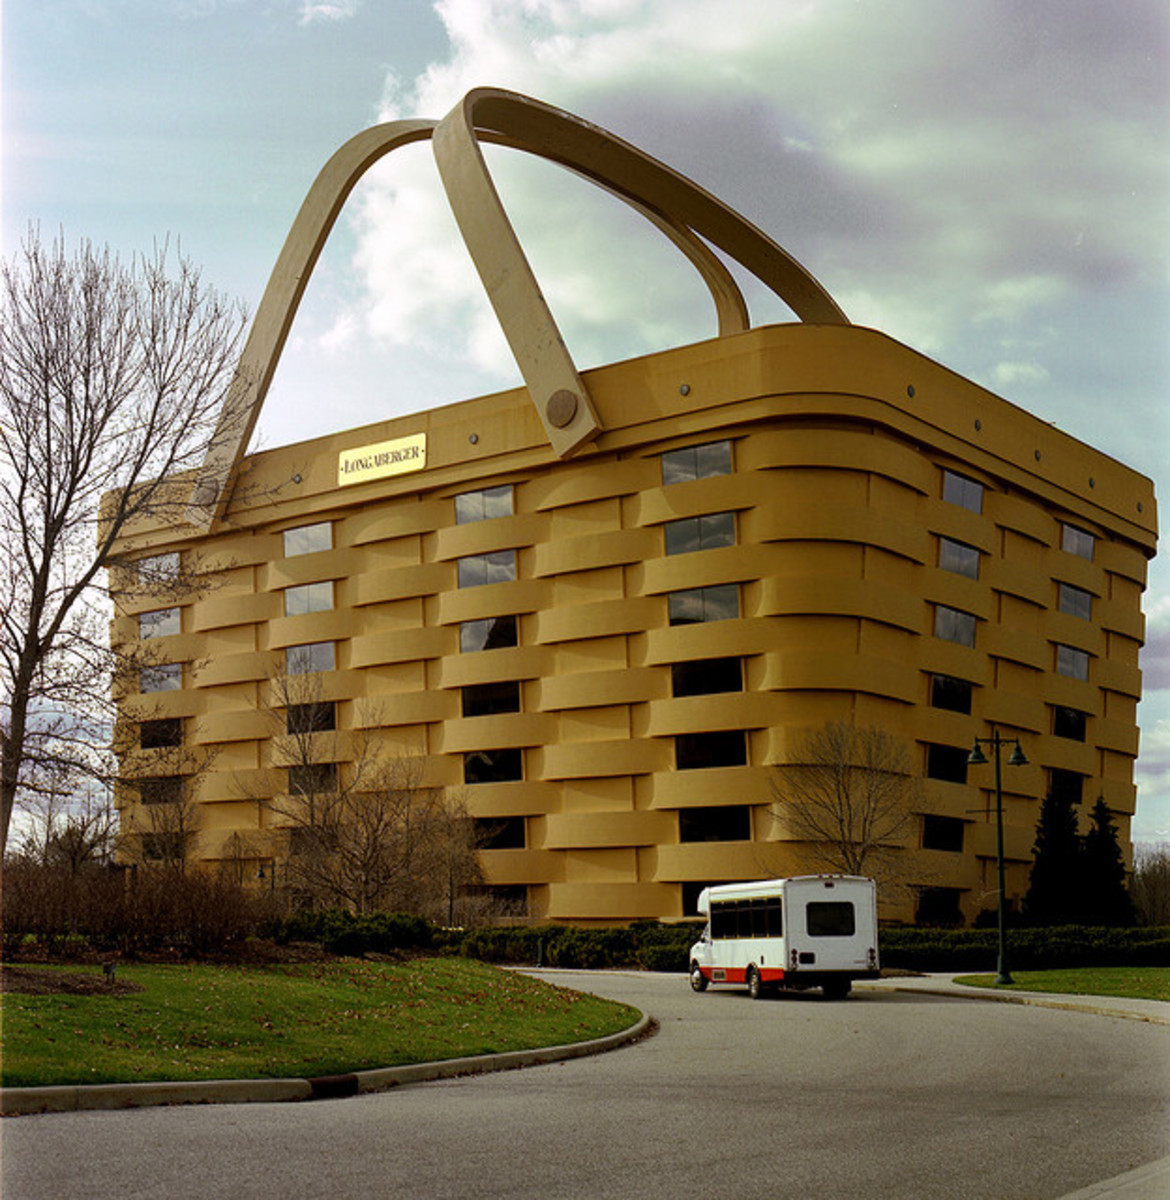 Basket shaped building is actually the offices for Longaberger Basket Company, located in Newark, Ohio